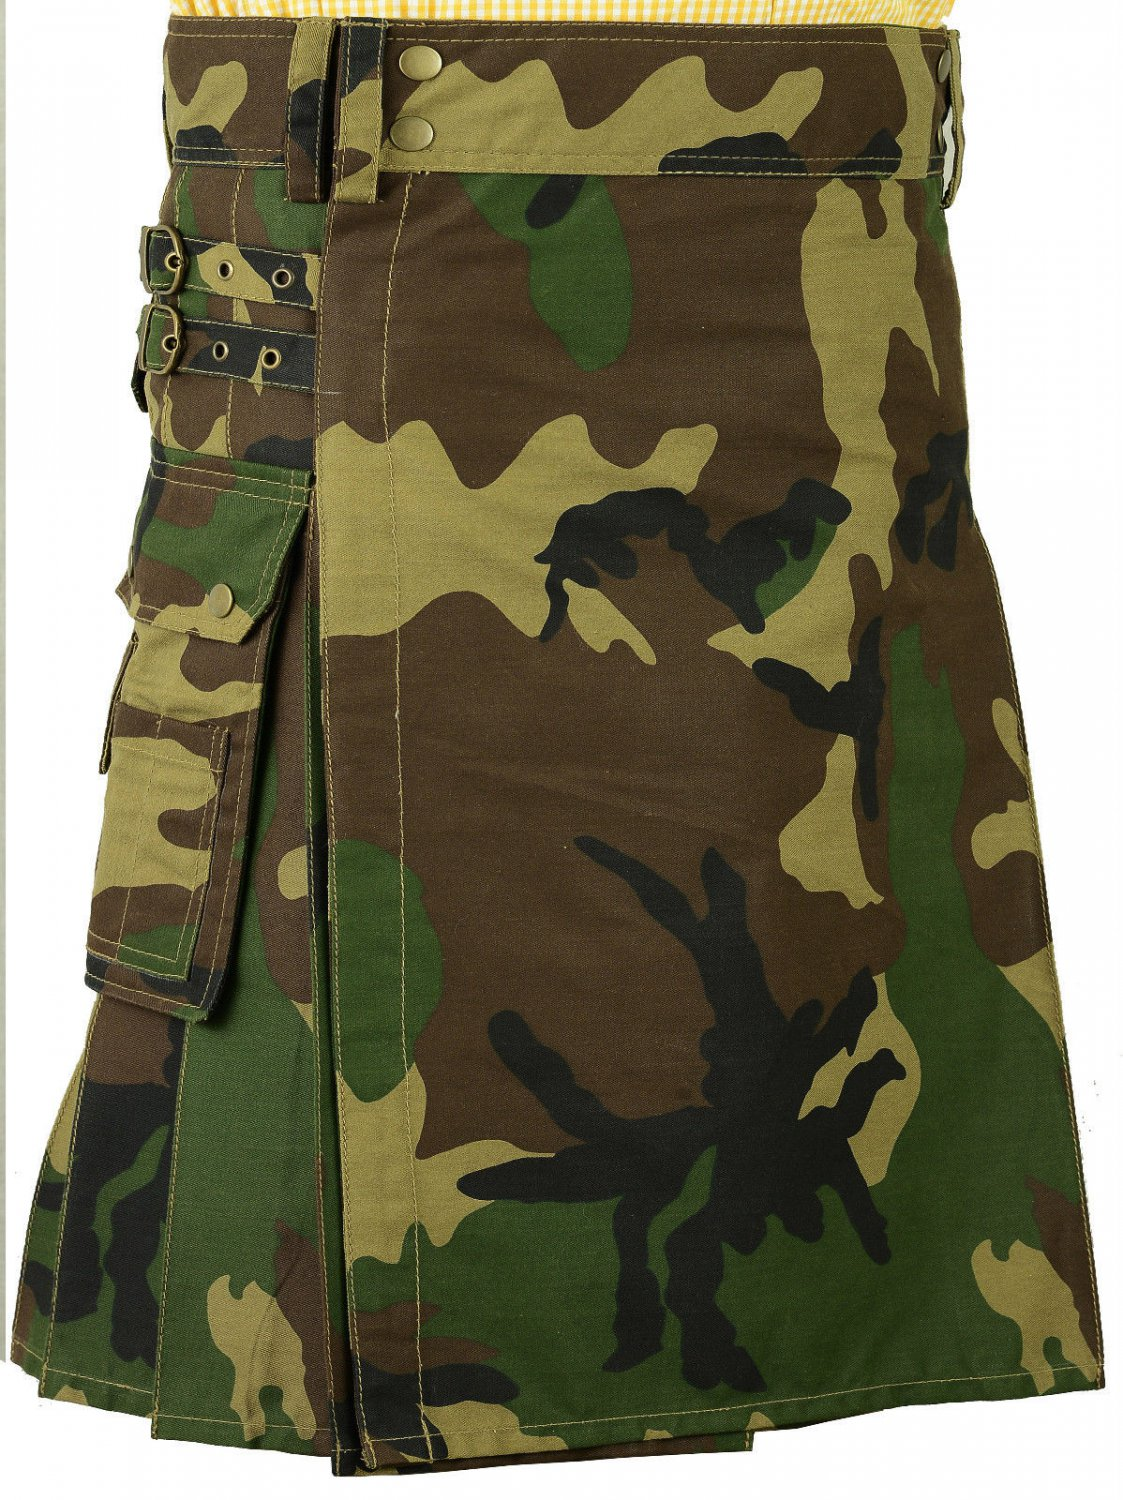 Size 42 Army Camo Utility Cotton Kilt  with Big Pockets